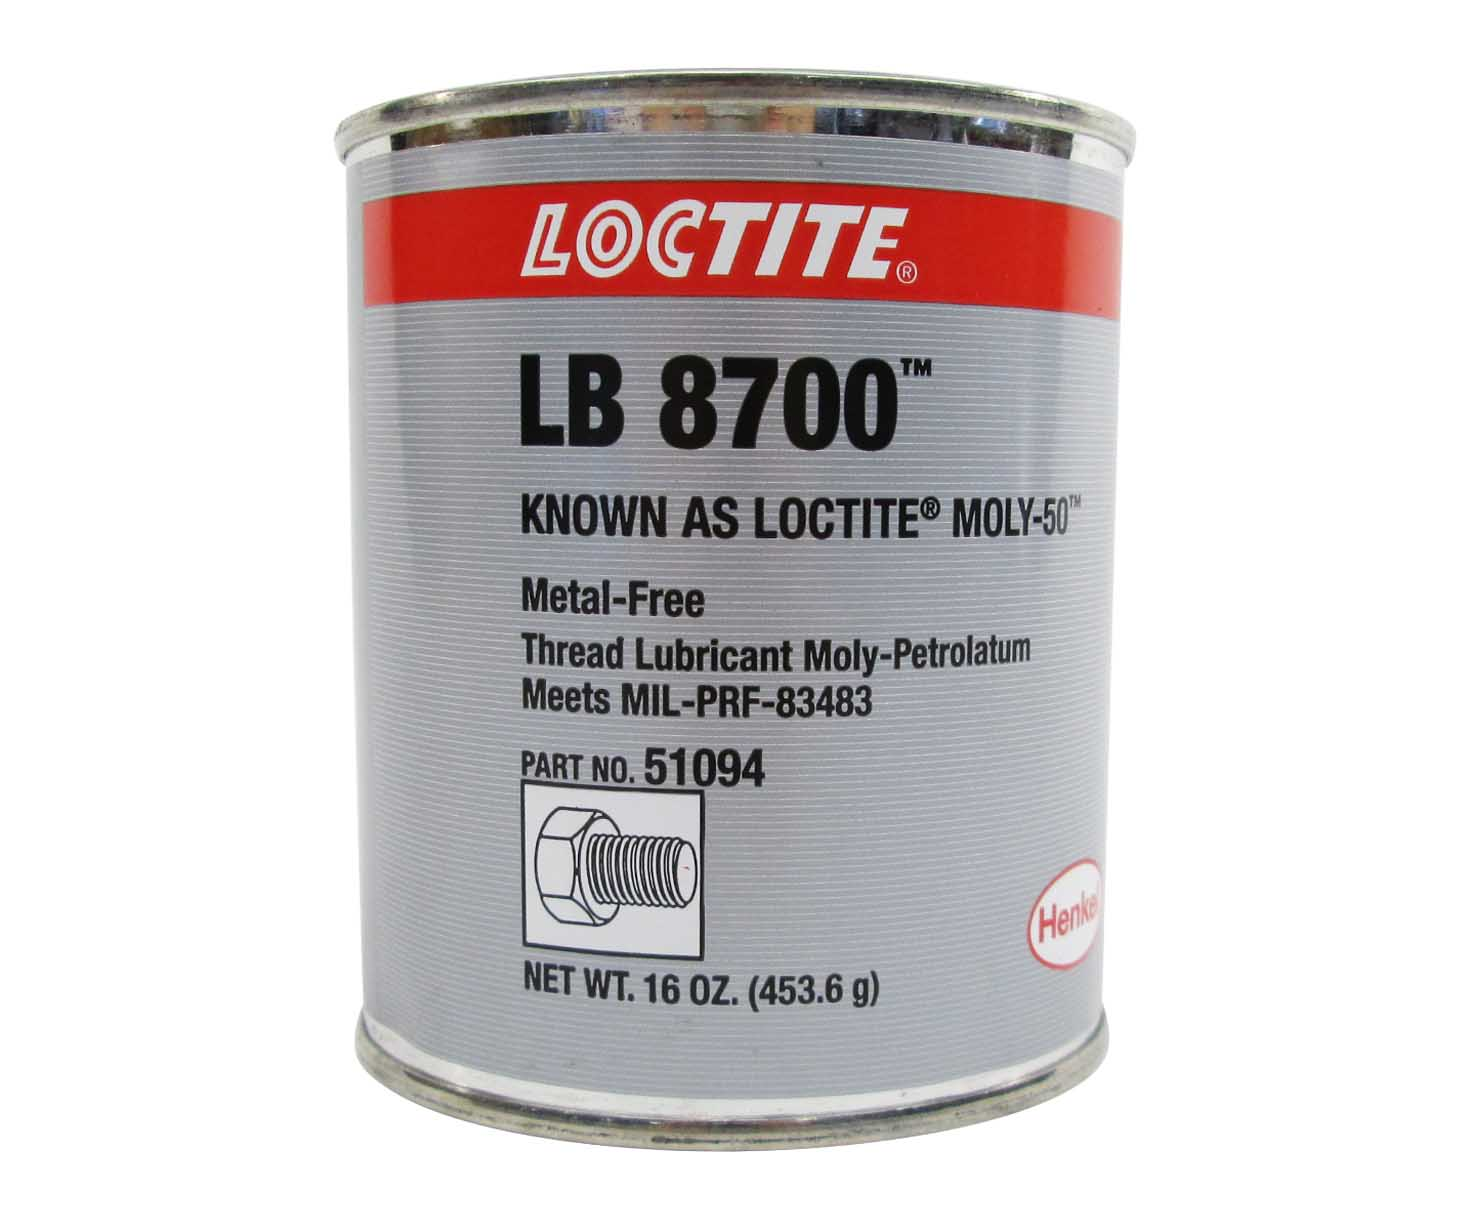 Henkel 51094 LOCTITE® LB 8700™ Moly 50™ Metal-Free Gray Smooth Thread  Lubricant Paste - 453 Gram (16 oz) Can